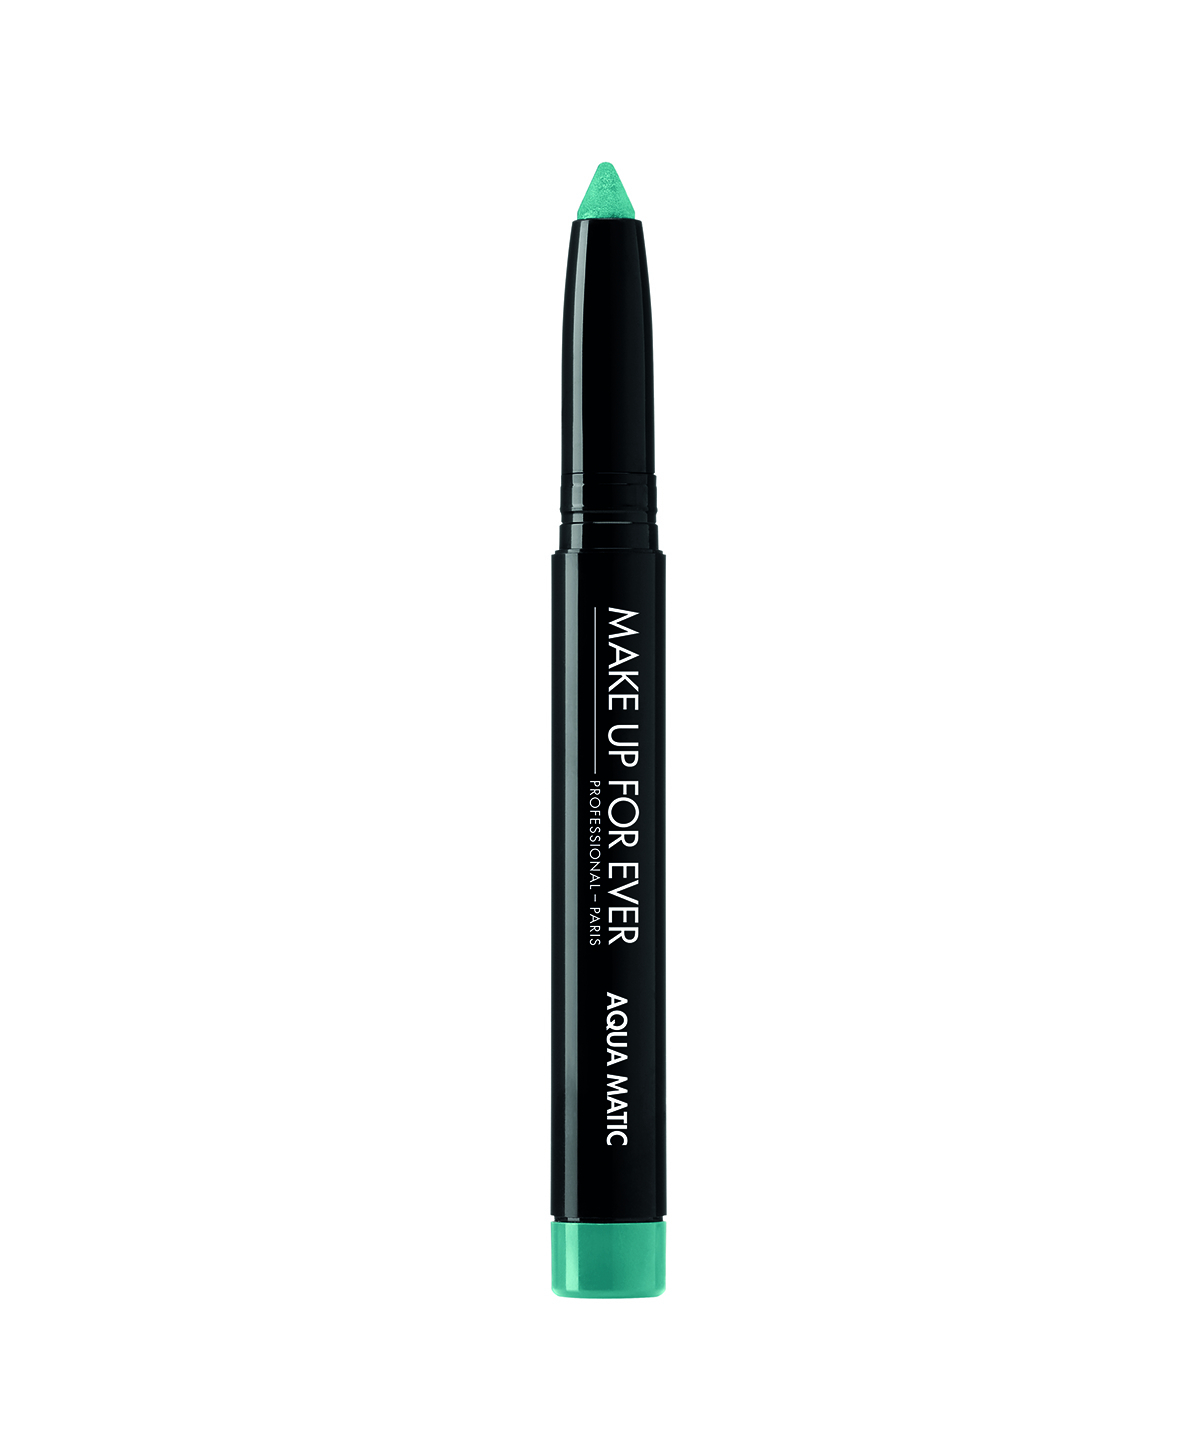 MakeUp Forever Aqua Matic